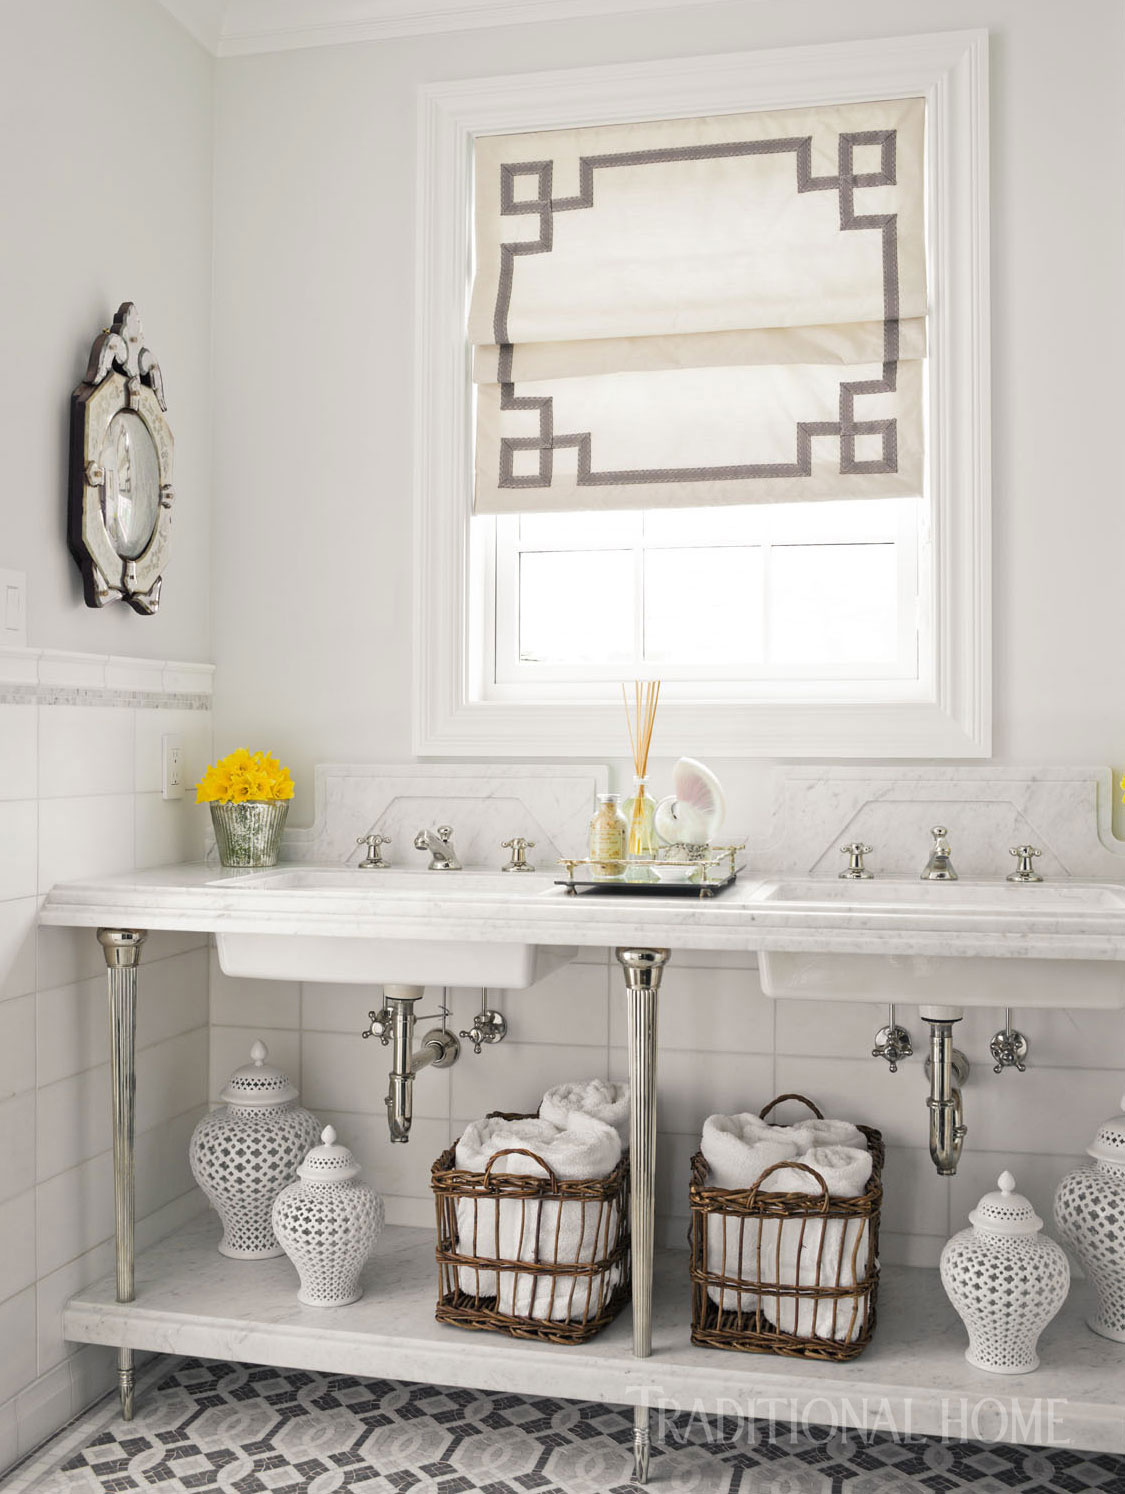 Seattle Bathroom Awash in Serenity | Traditional Home